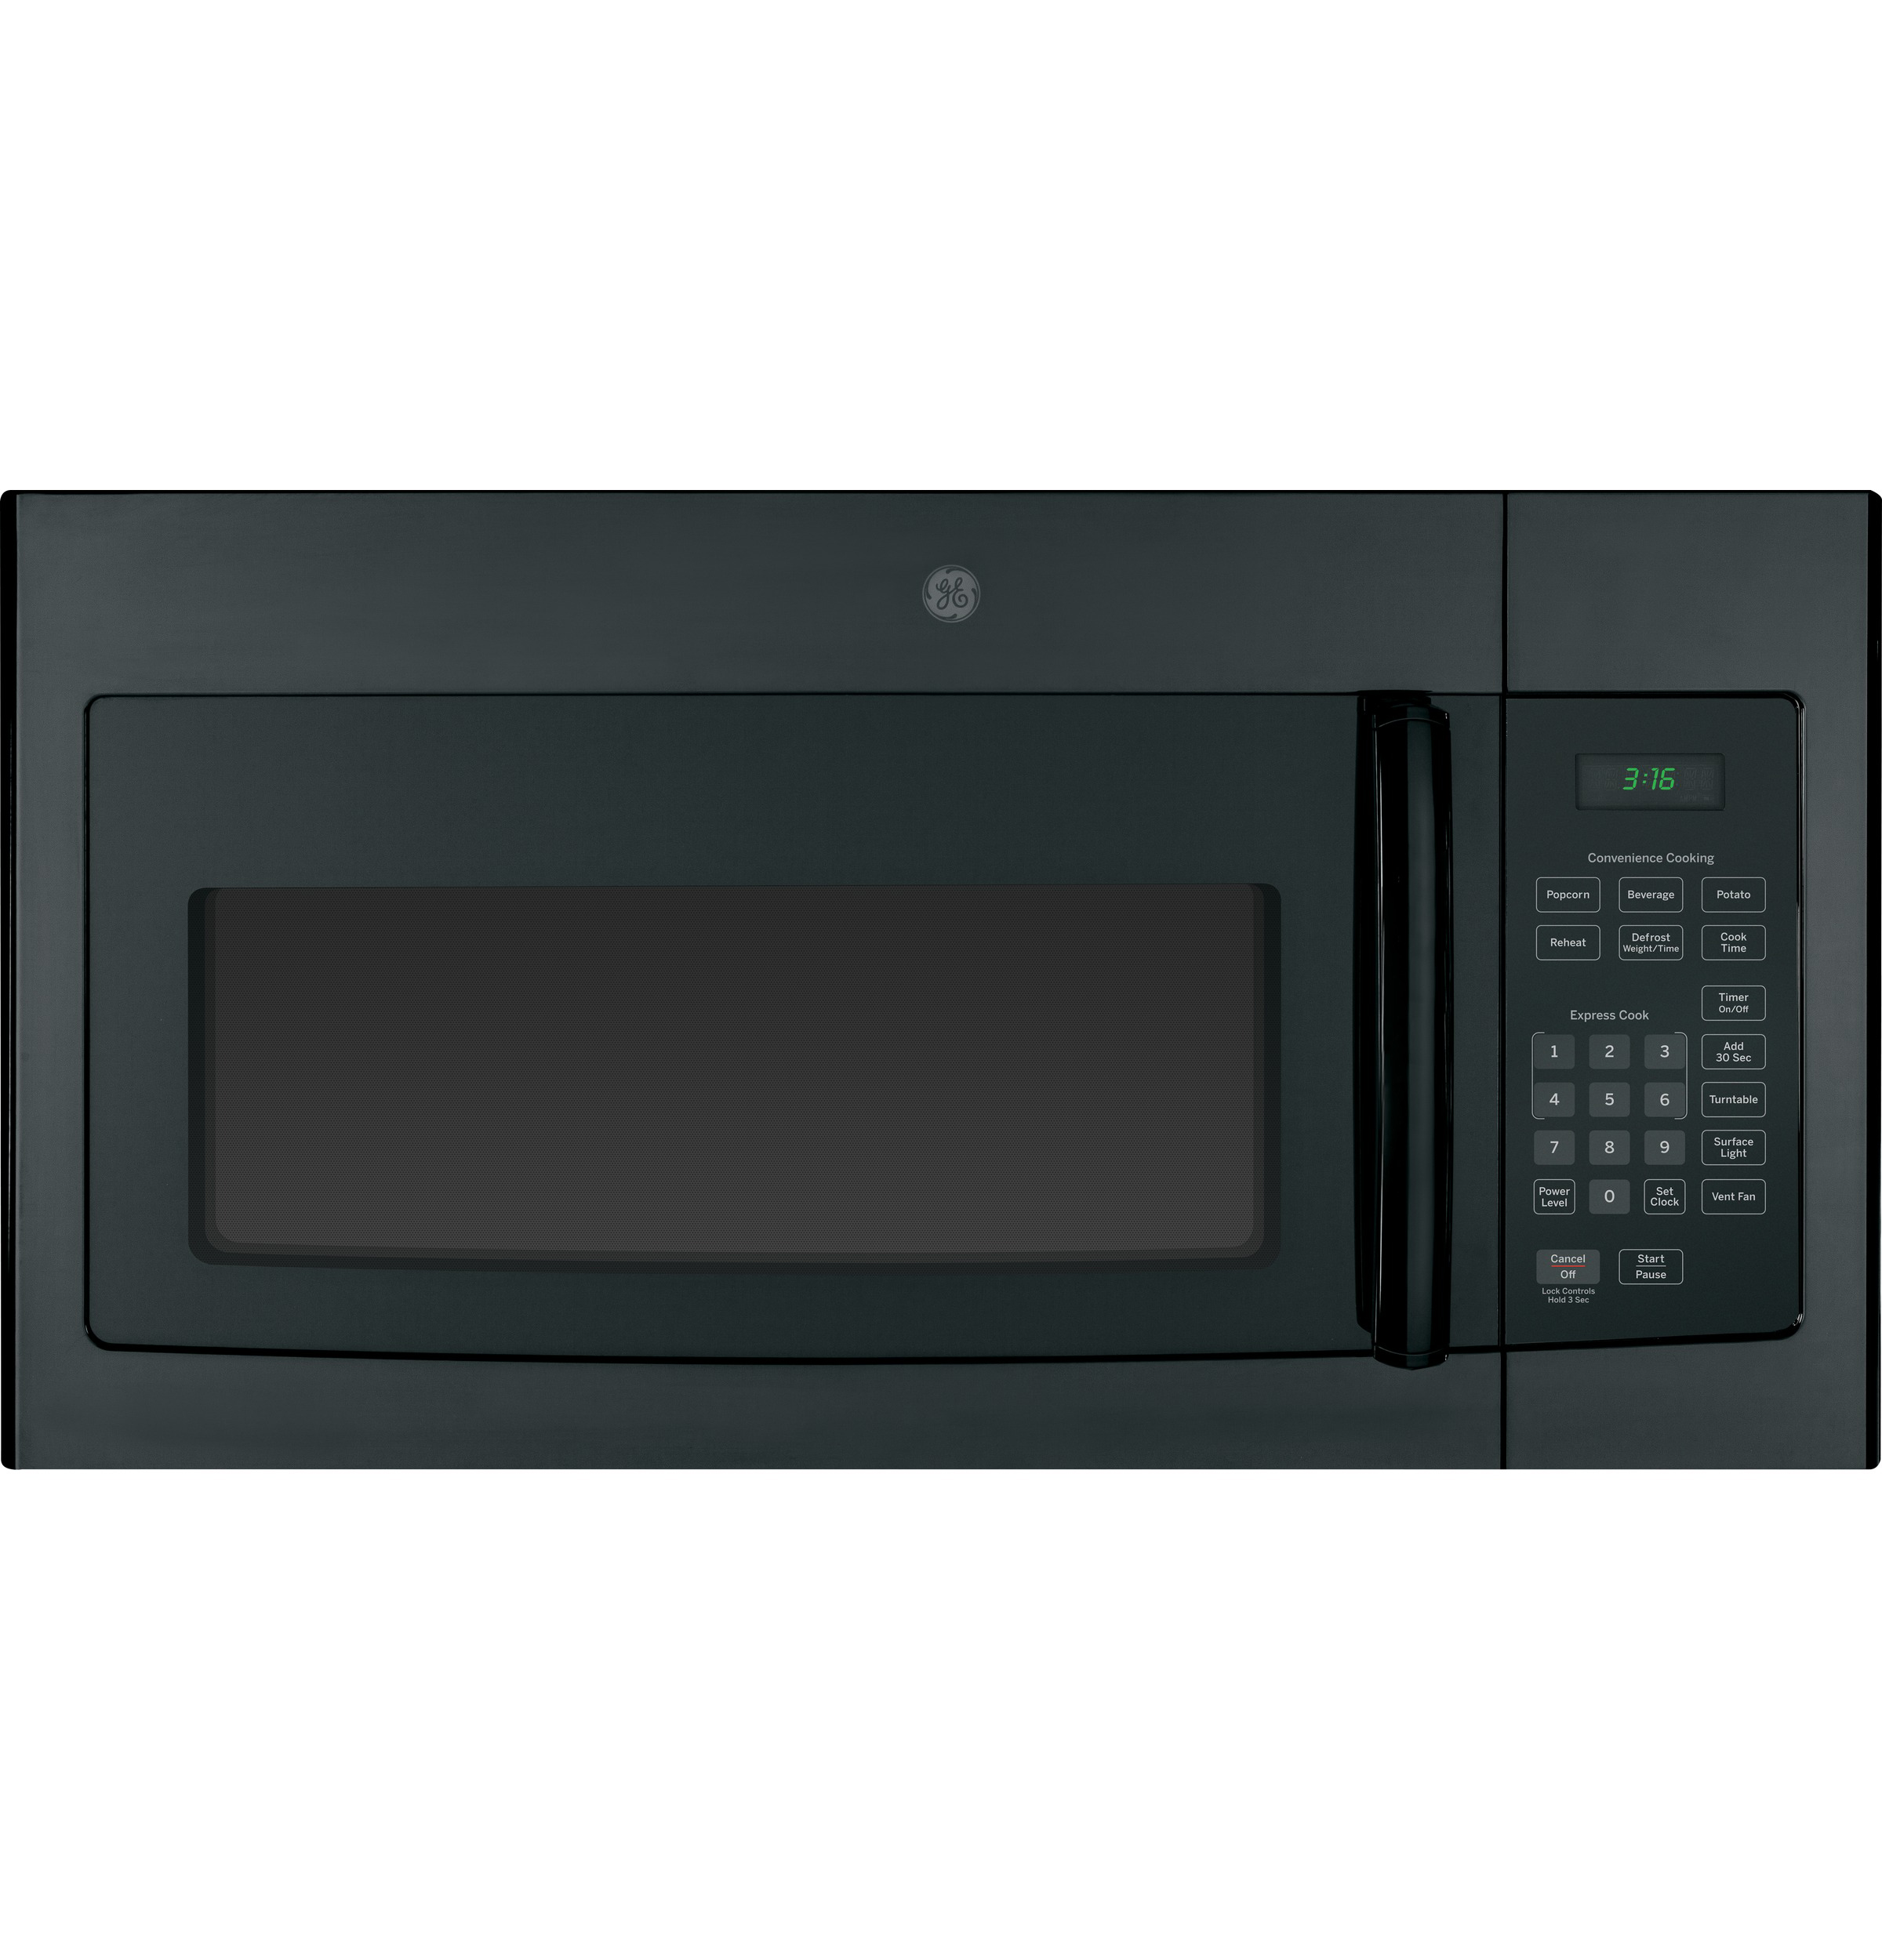 GE� 1.6 CU. FT. OVER-THE-RANGE MICROWAVE OVEN, BLACK, 1000 WATTS